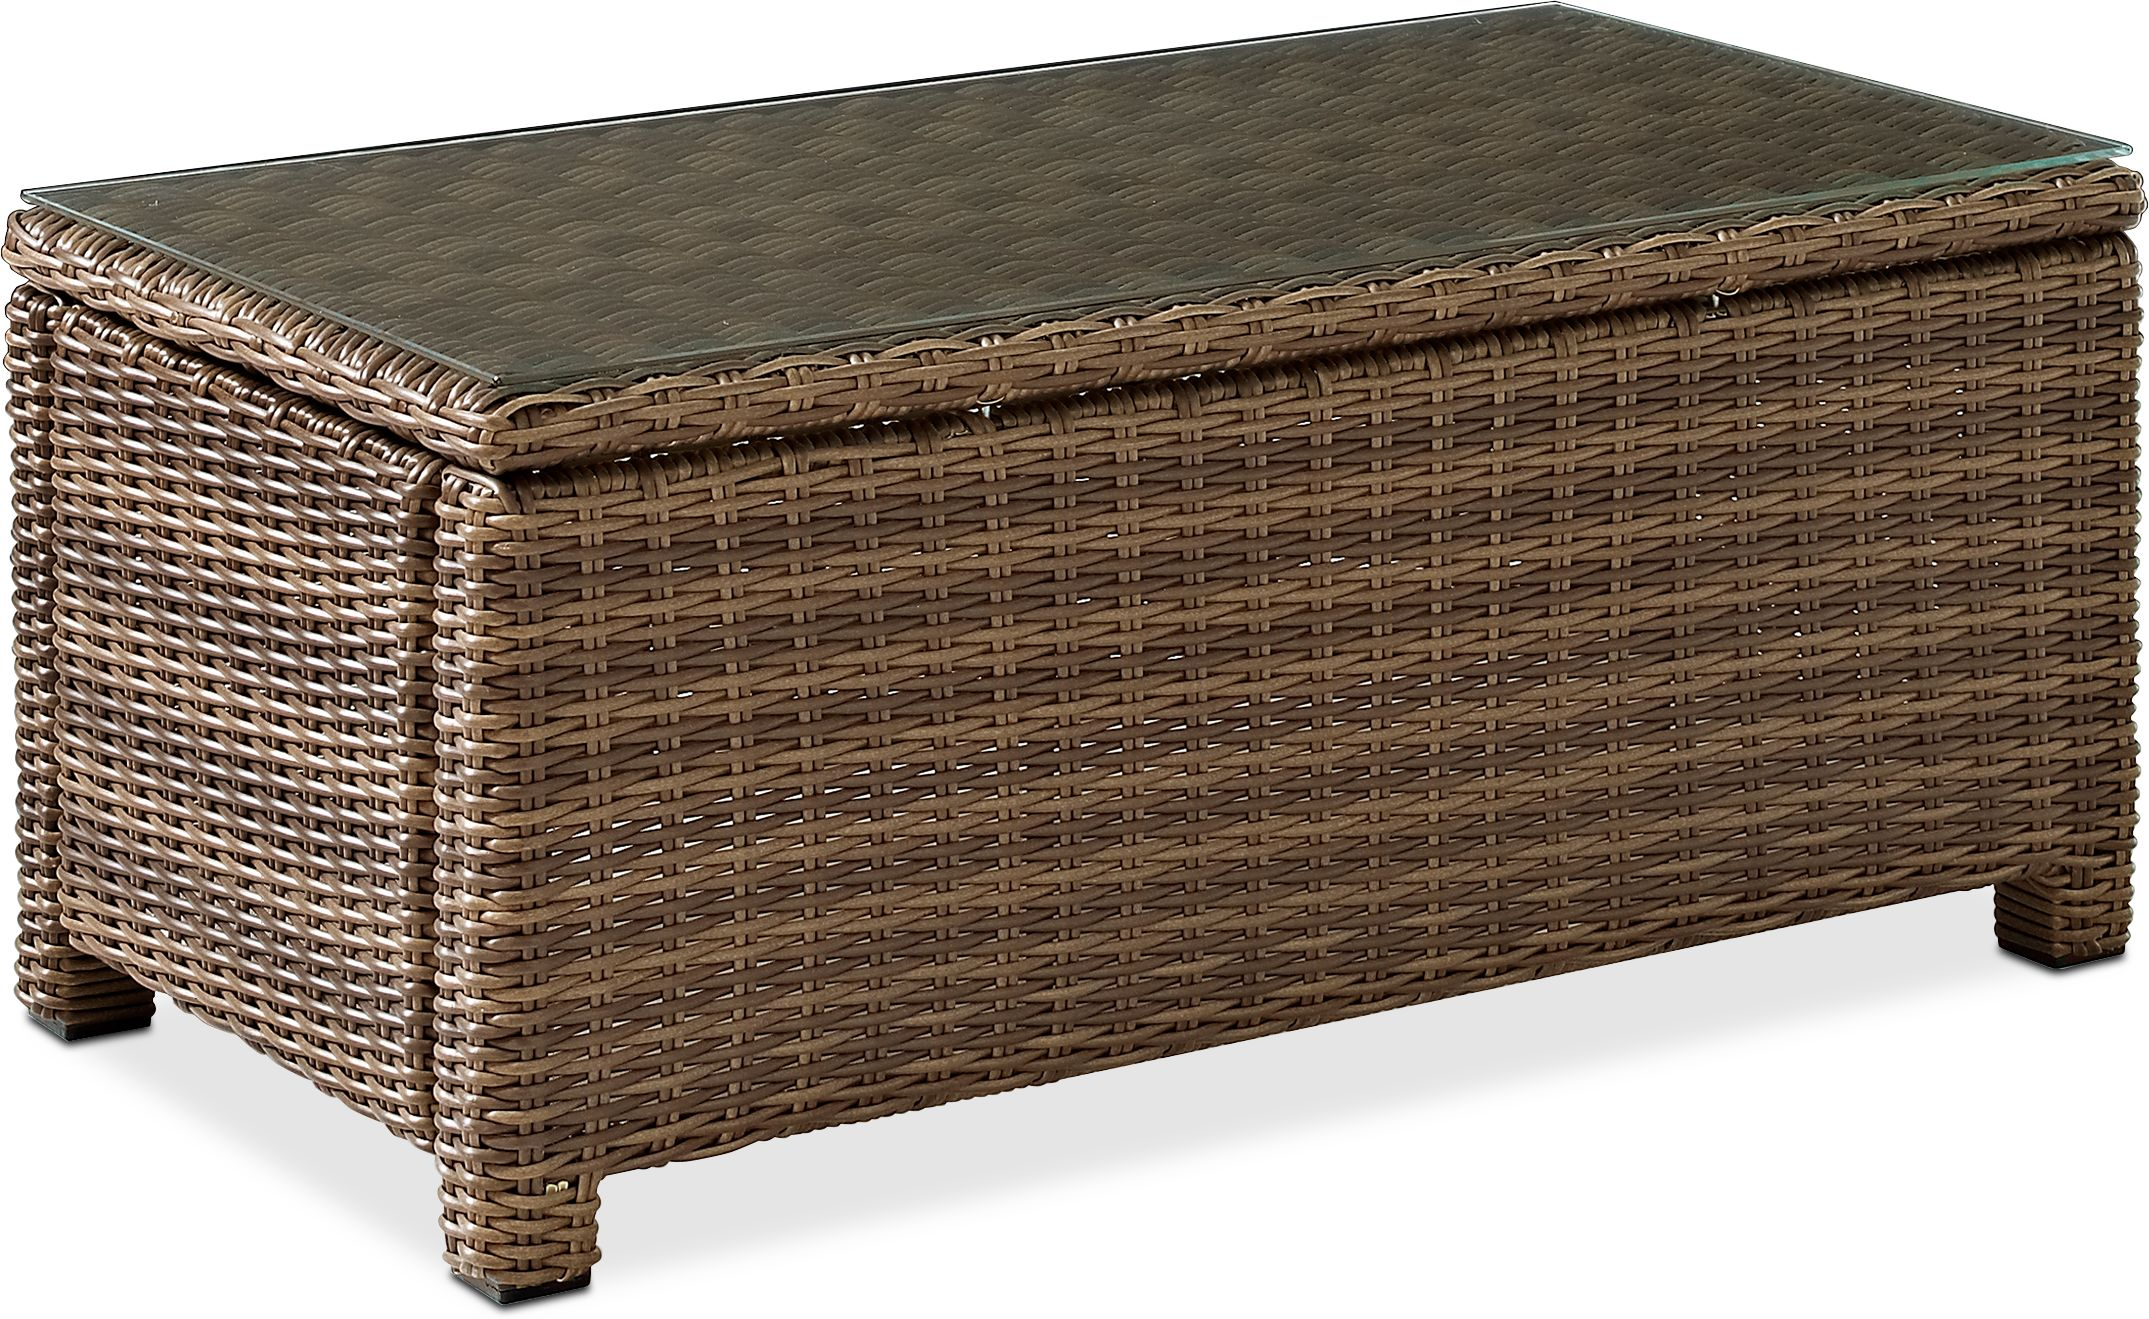 Outdoor Furniture - Destin Outdoor Rectangular Coffee Table